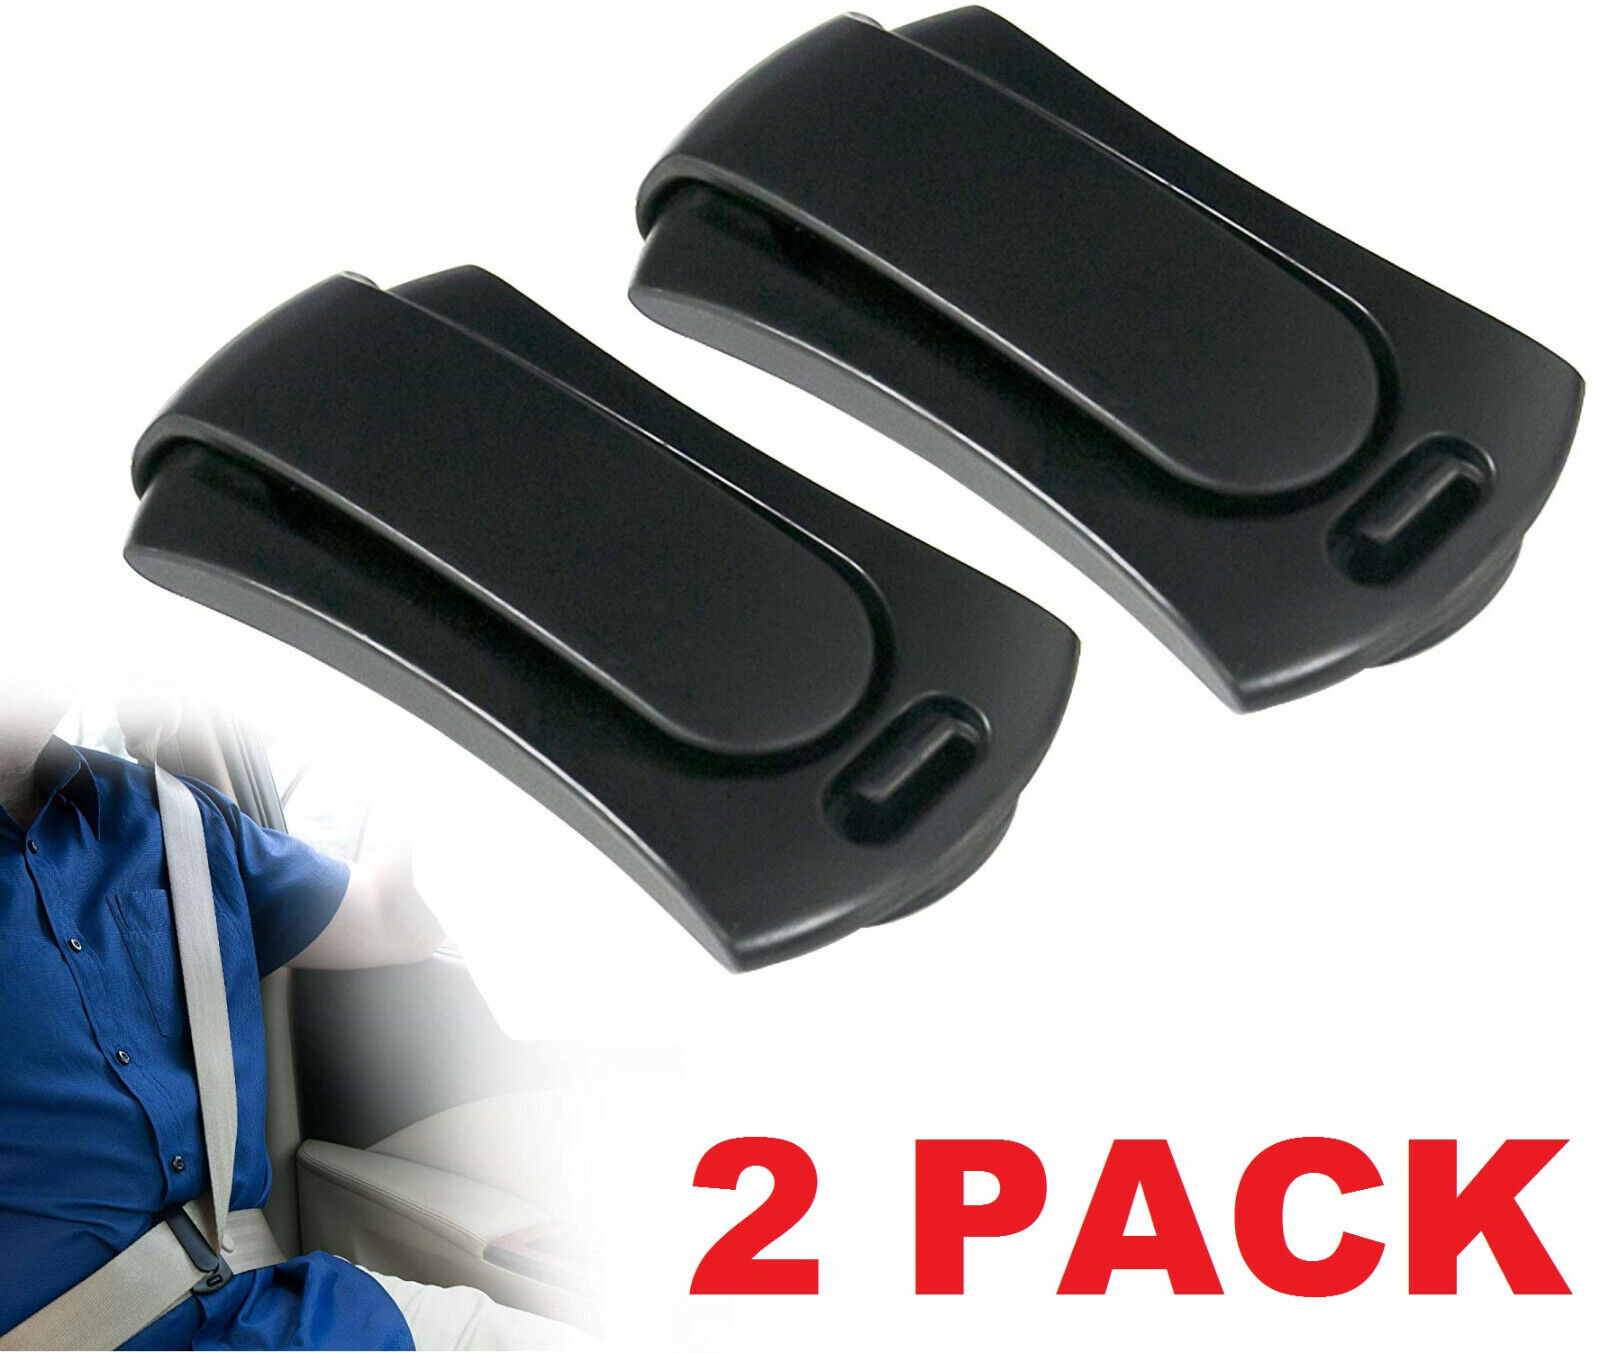 2x Car Seat Belt Adjuster Buckle Strap Comfort Seatbelt Clips Extender Stopper Car & Truck Parts